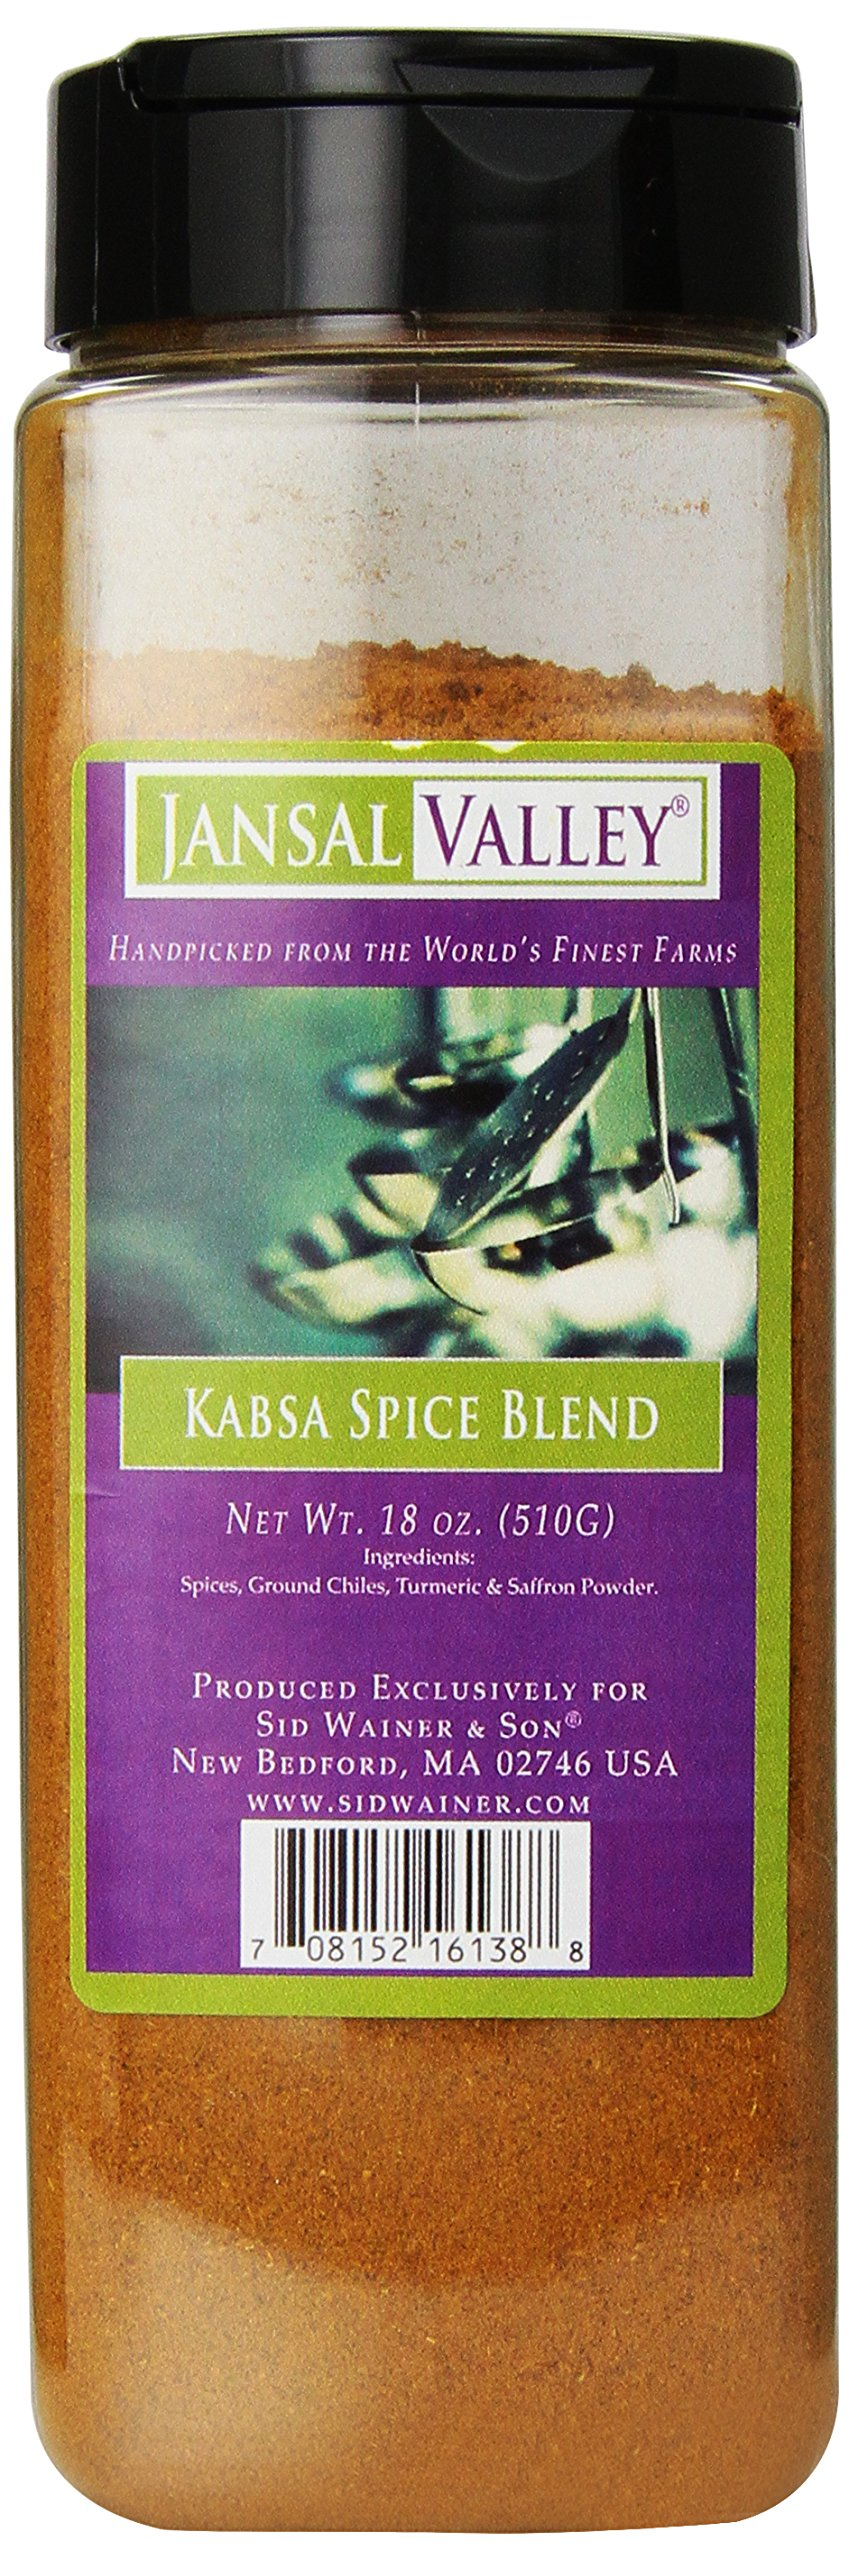 Jansal Valley Kabsa Spice Blend, 18 Ounce by Jansal Valley (Image #1)